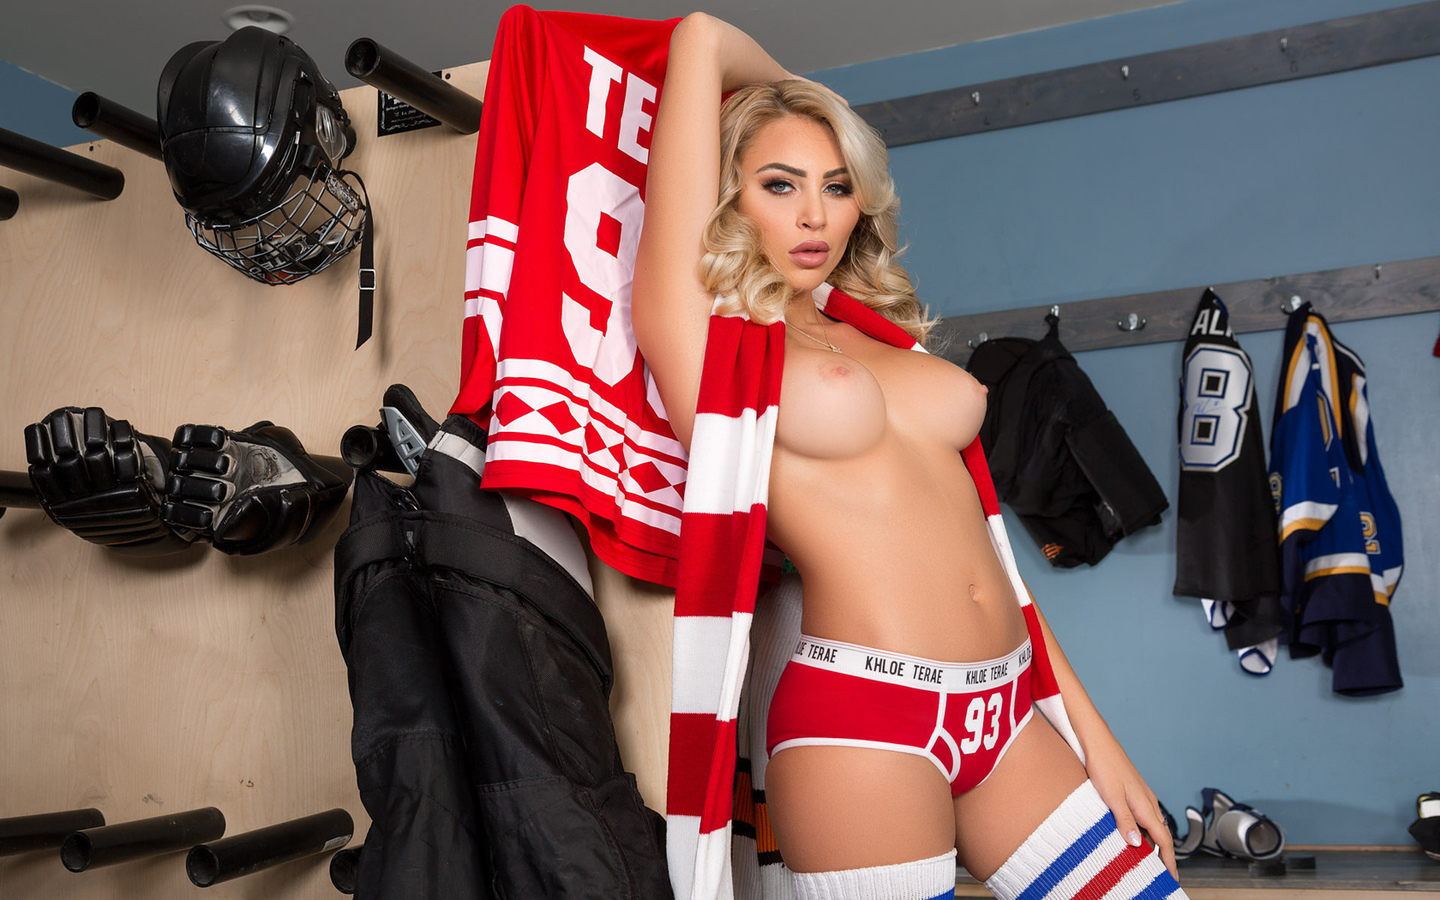 hump-rub-milesex-yankee-girls-hockey-hung